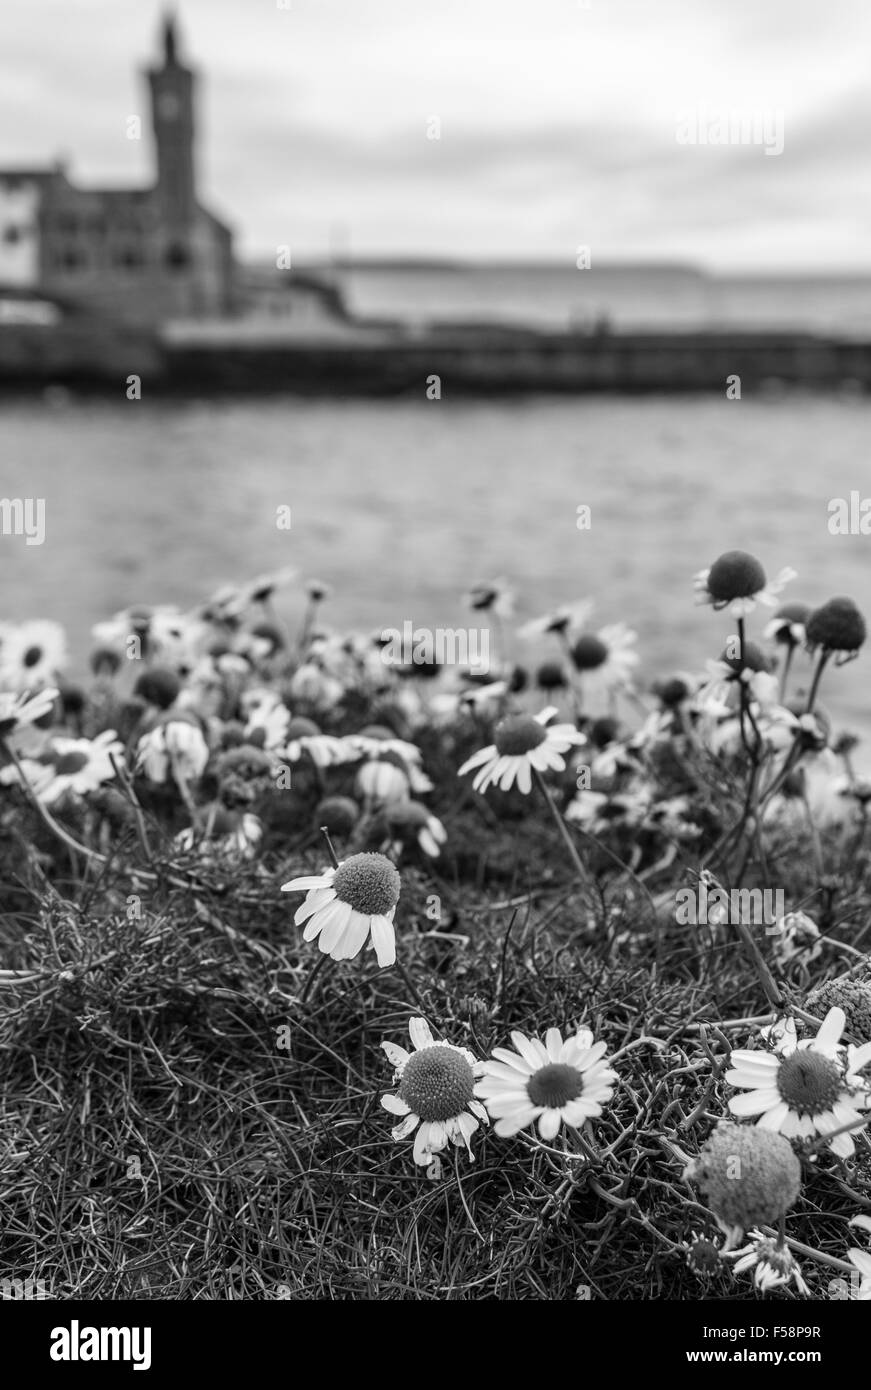 Daisies in black and white against the sea with the iconic Porthleven clock tower blurred in the background, Cornwall, - Stock Image